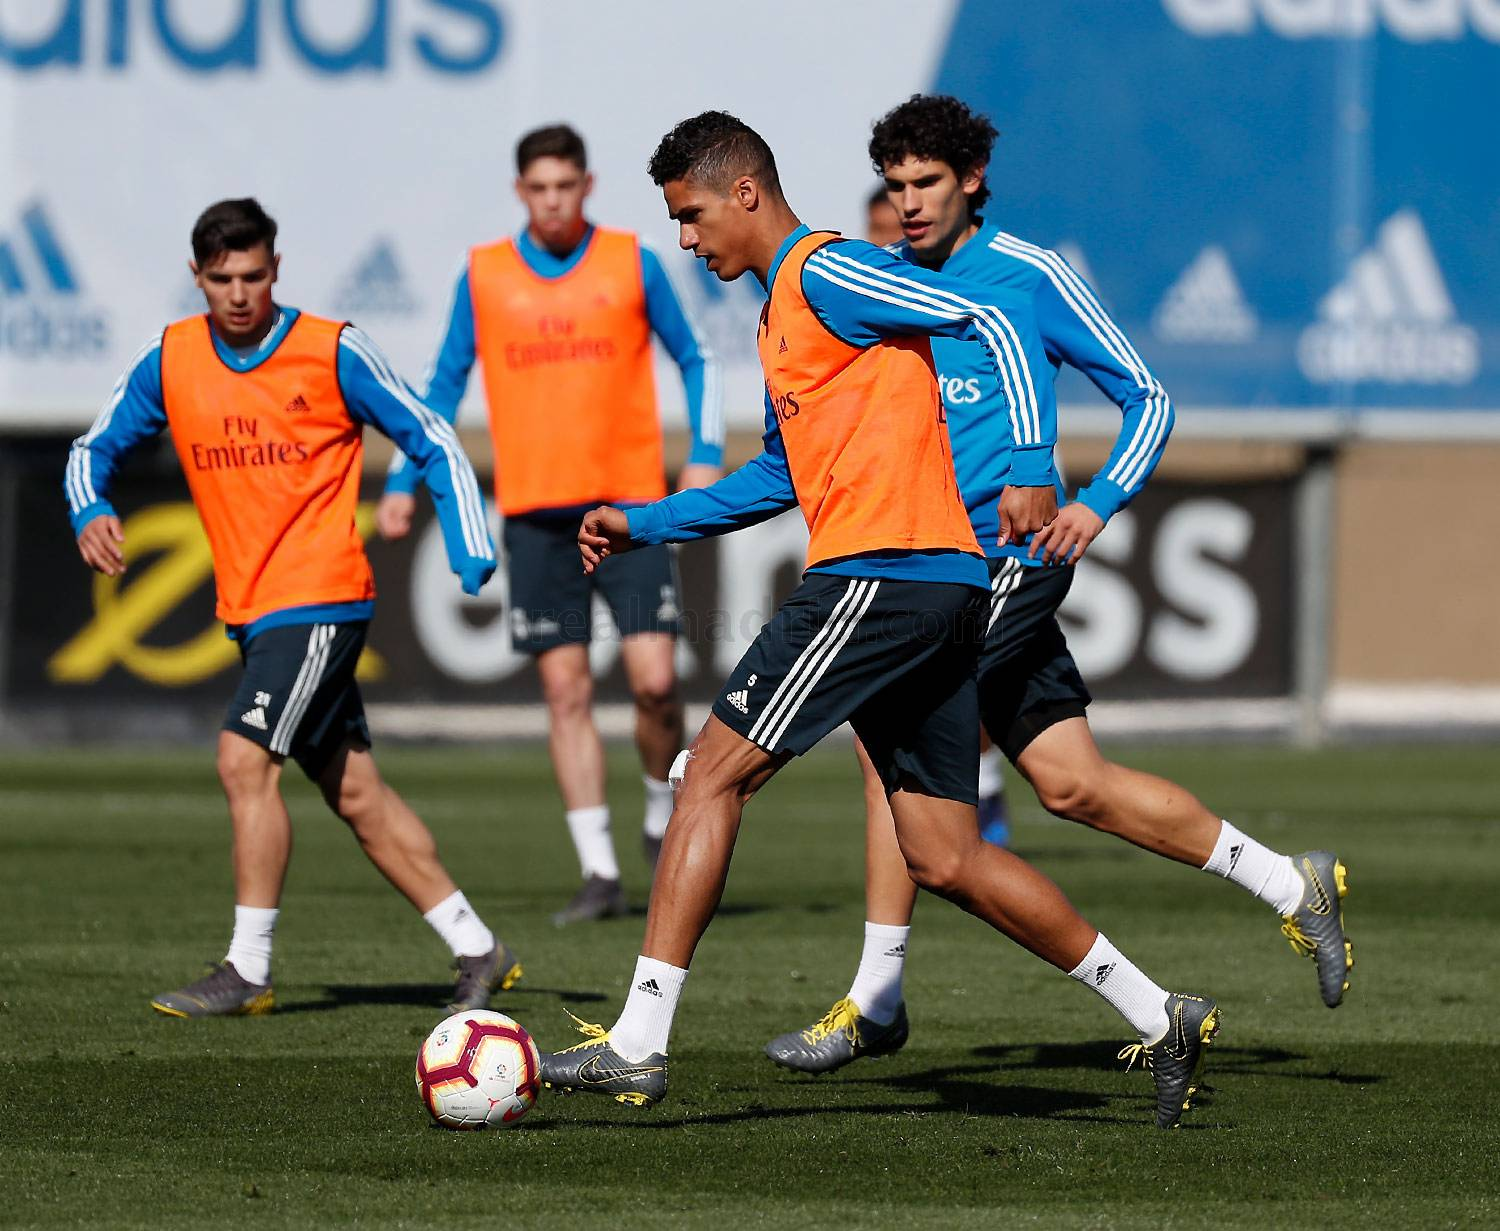 Real Madrid - Entrenamiento del Real Madrid - 08-03-2019